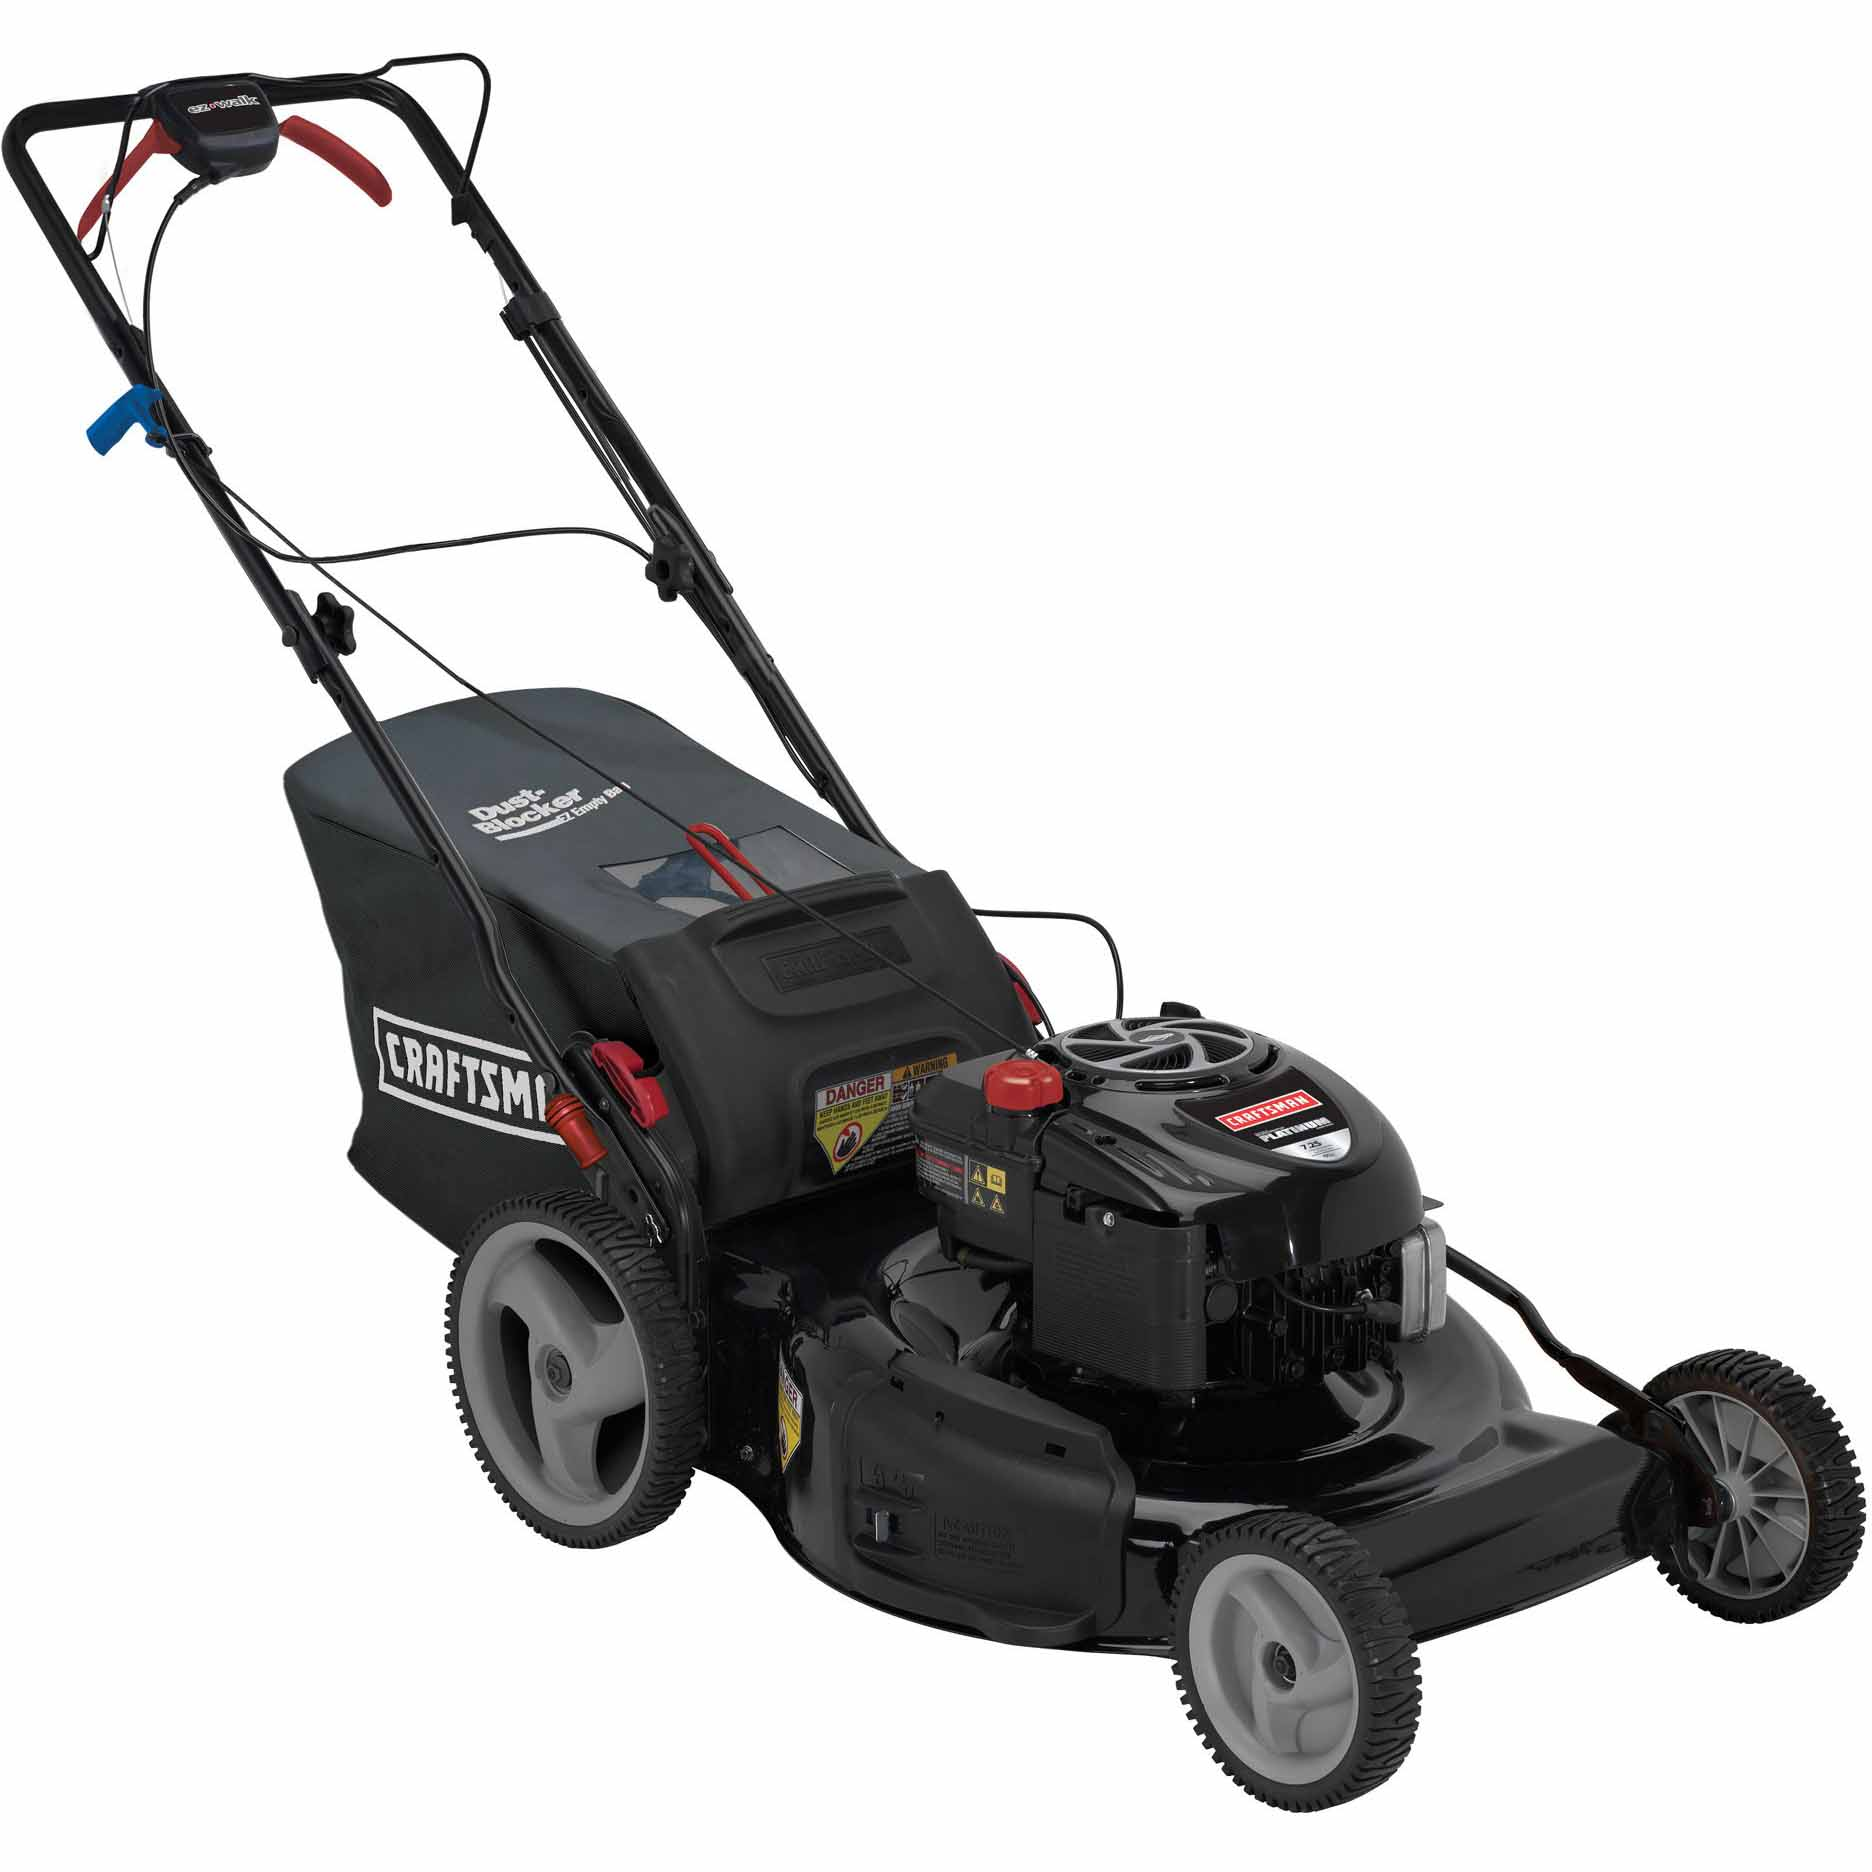 "Craftsman 190cc* Briggs & Stratton Platinum Engine, 22"" Rear Drive Self-Propelled EZ Lawn Mower 50 States"